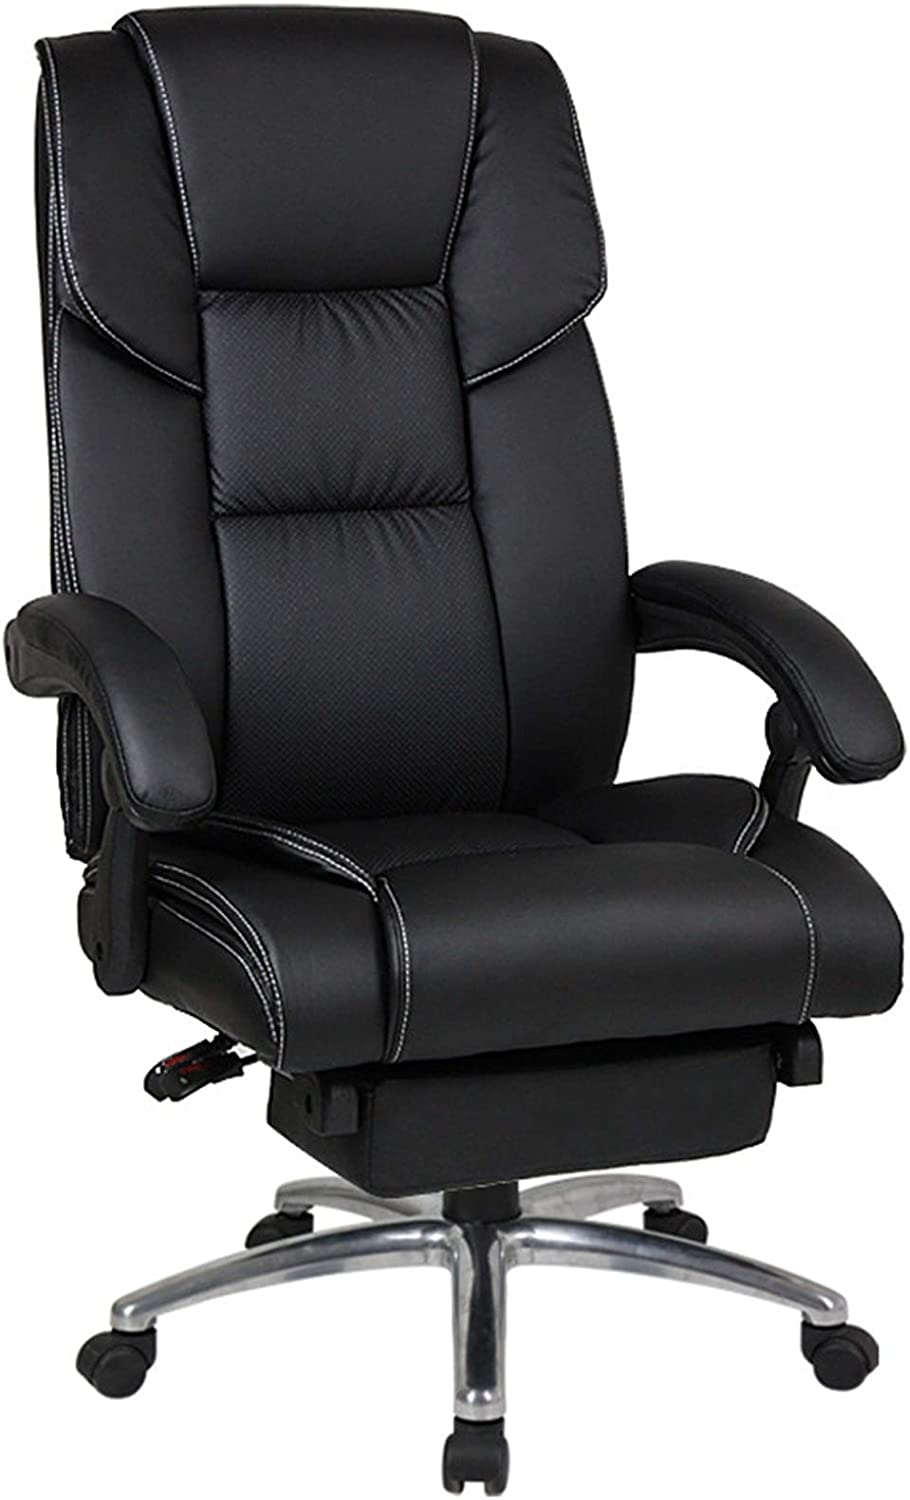 Our shop most popular DJDLLZY Office Chair safety Ergonomic Design Seat 36 Height Adjustable